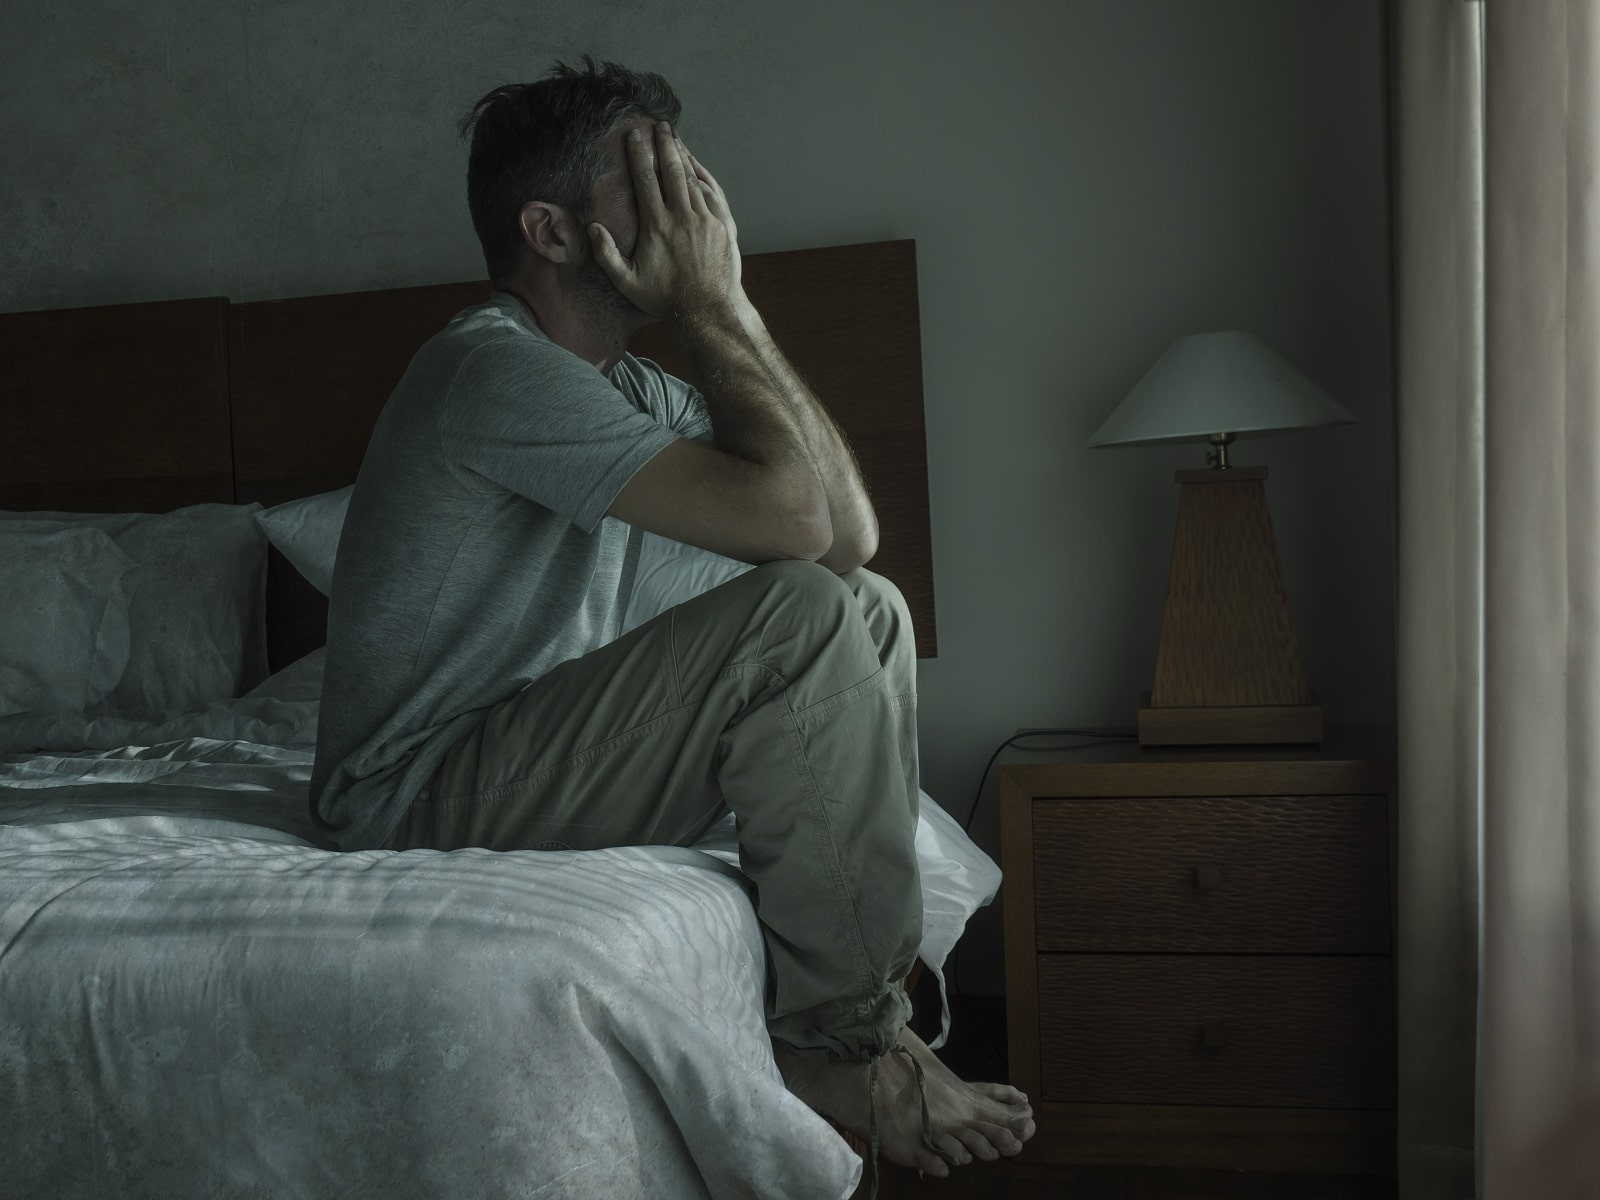 man struggling with chronic fatigue syndrome